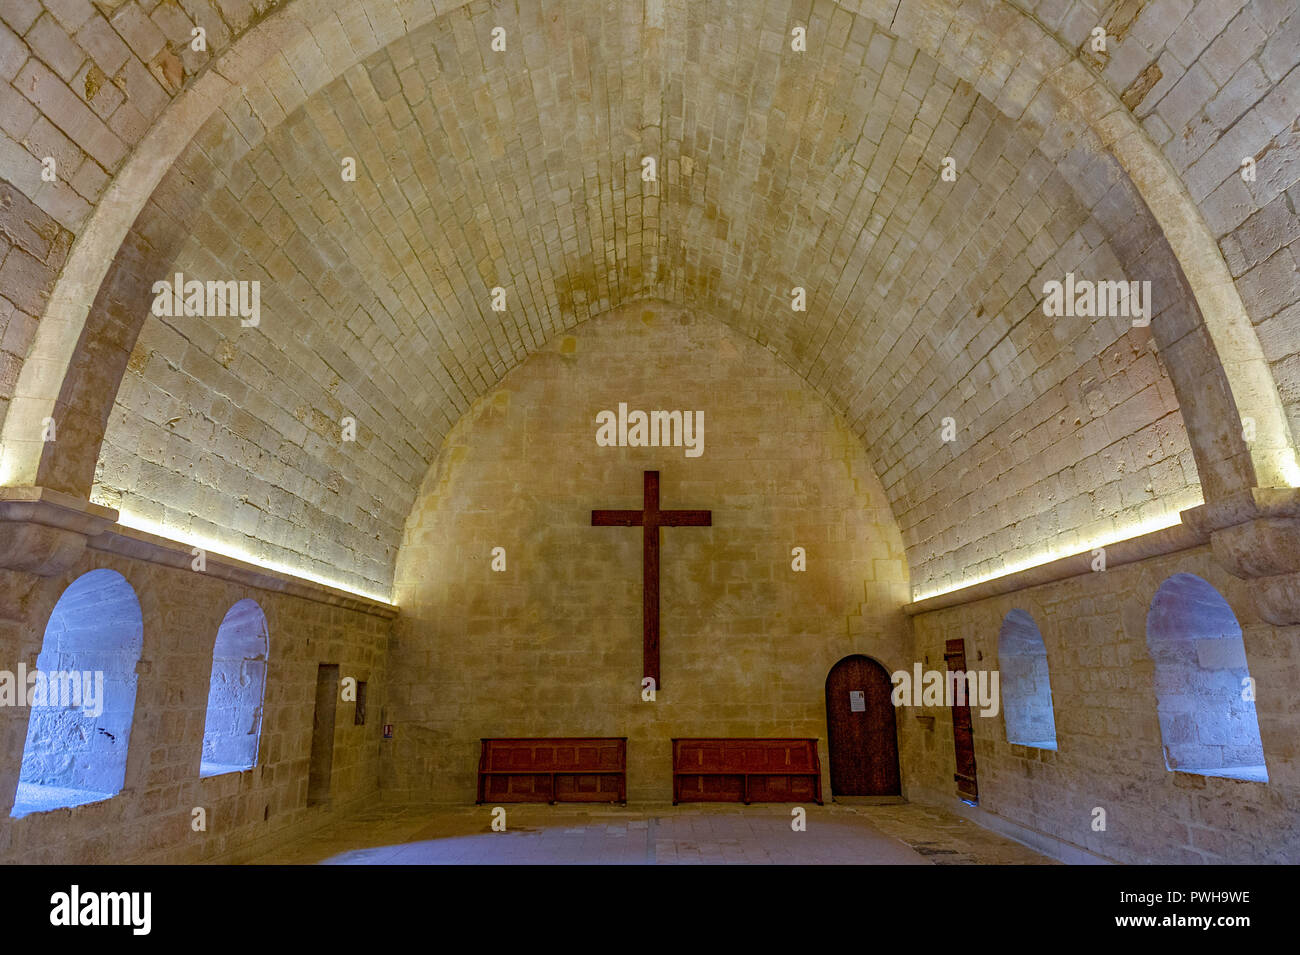 France. Vaucluse (84). Common Gordes. Regional Natural Park of Luberon. Abbey Notre Dame de Senanque dating from the twelfth century. The dormitory - Stock Image